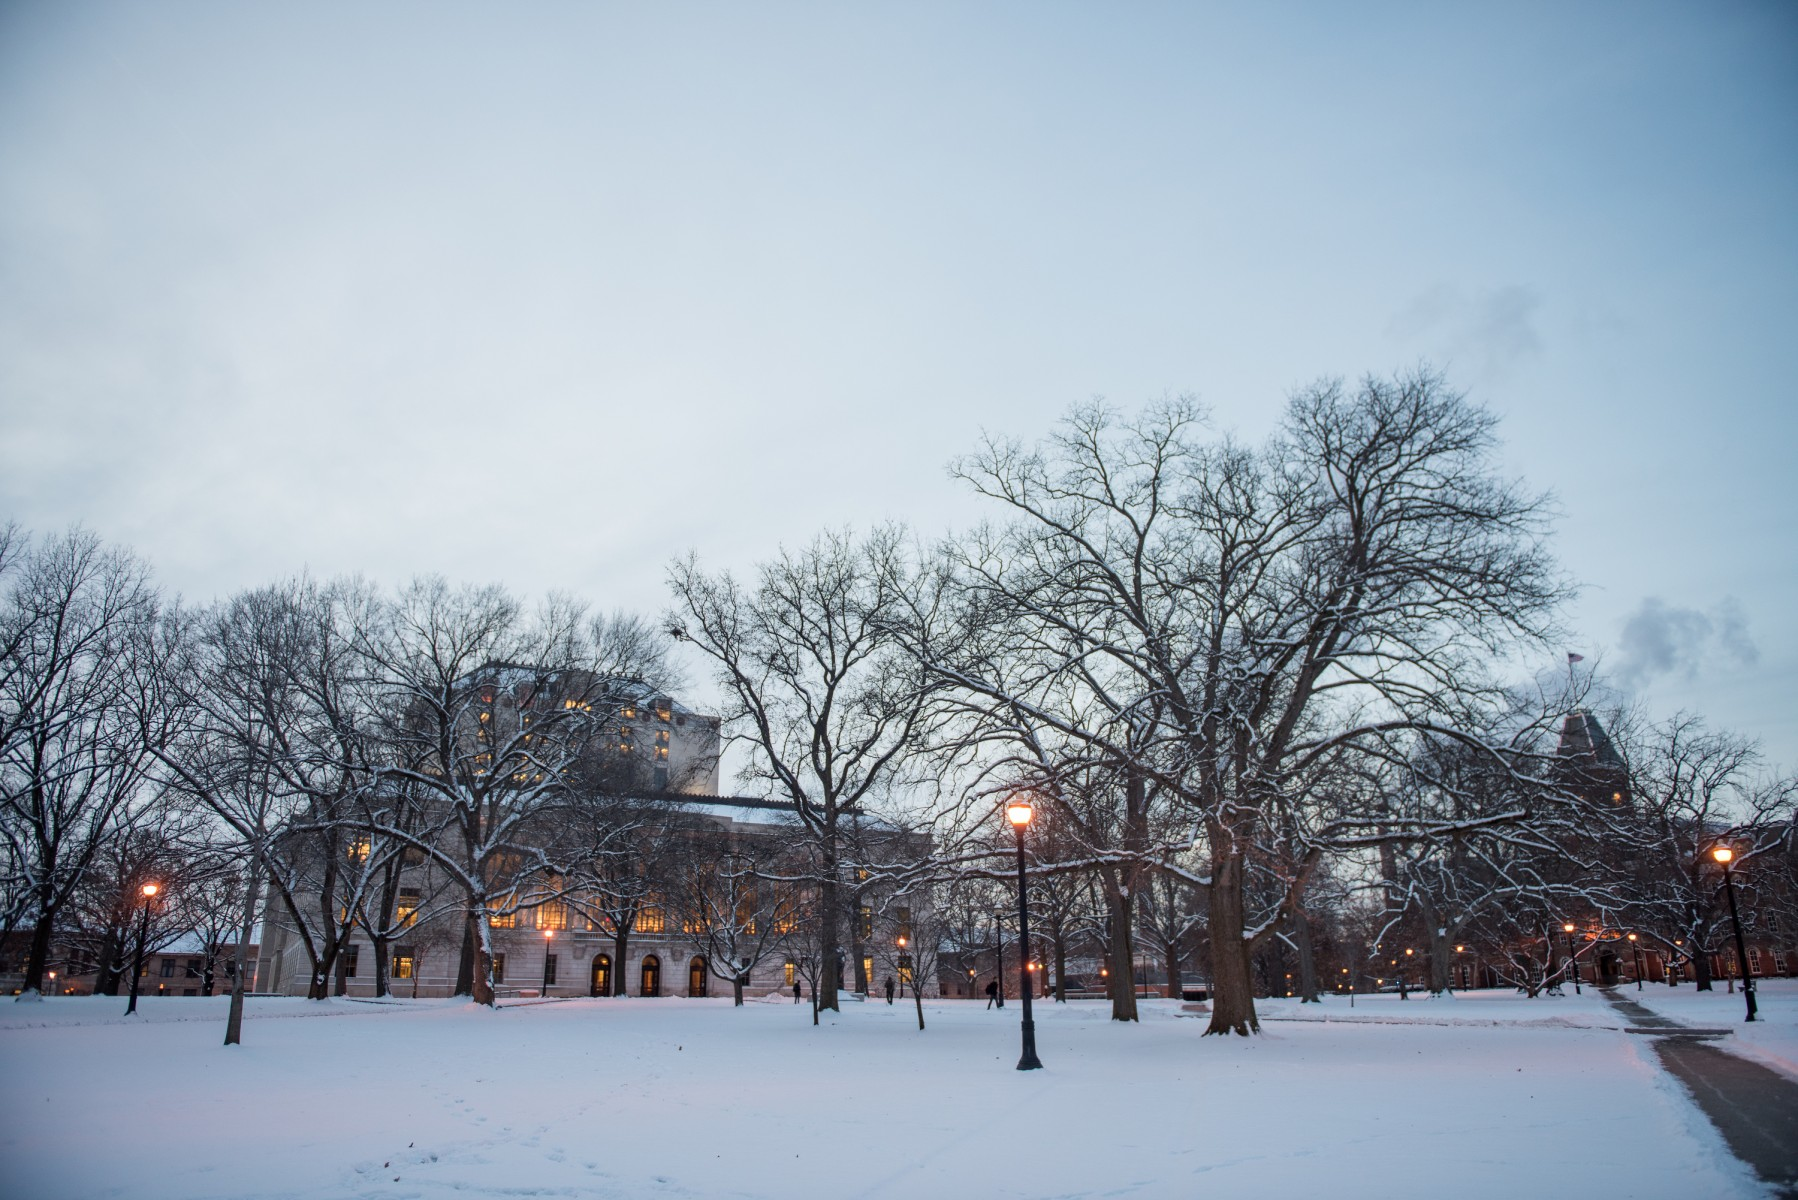 A winter evening on the Oval